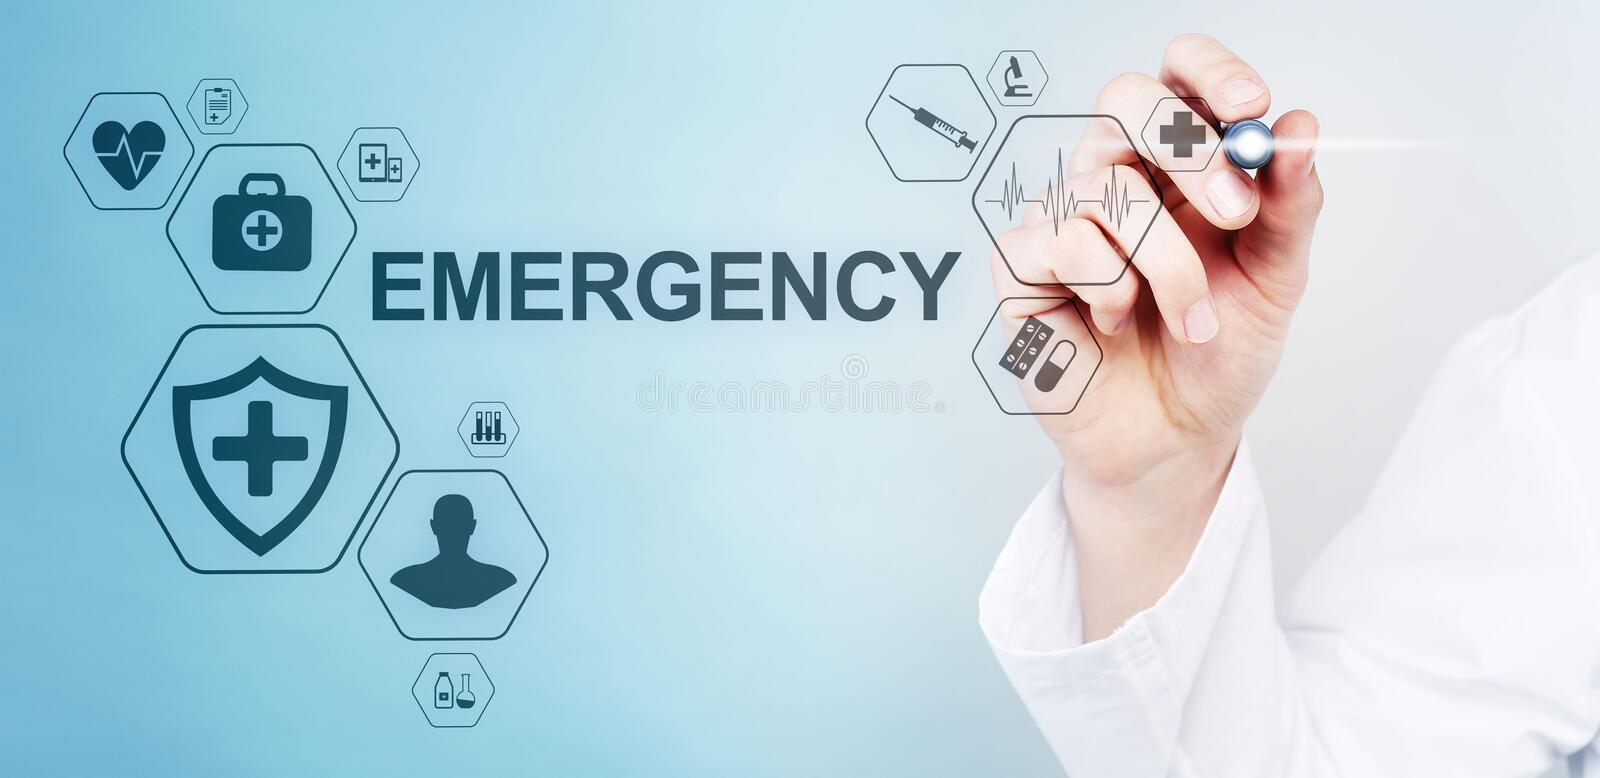 Health Care Emergency concept on screen. Medical doctor using computer. Health Care Emergency concept on screen. Medical doctor using computer royalty free illustration